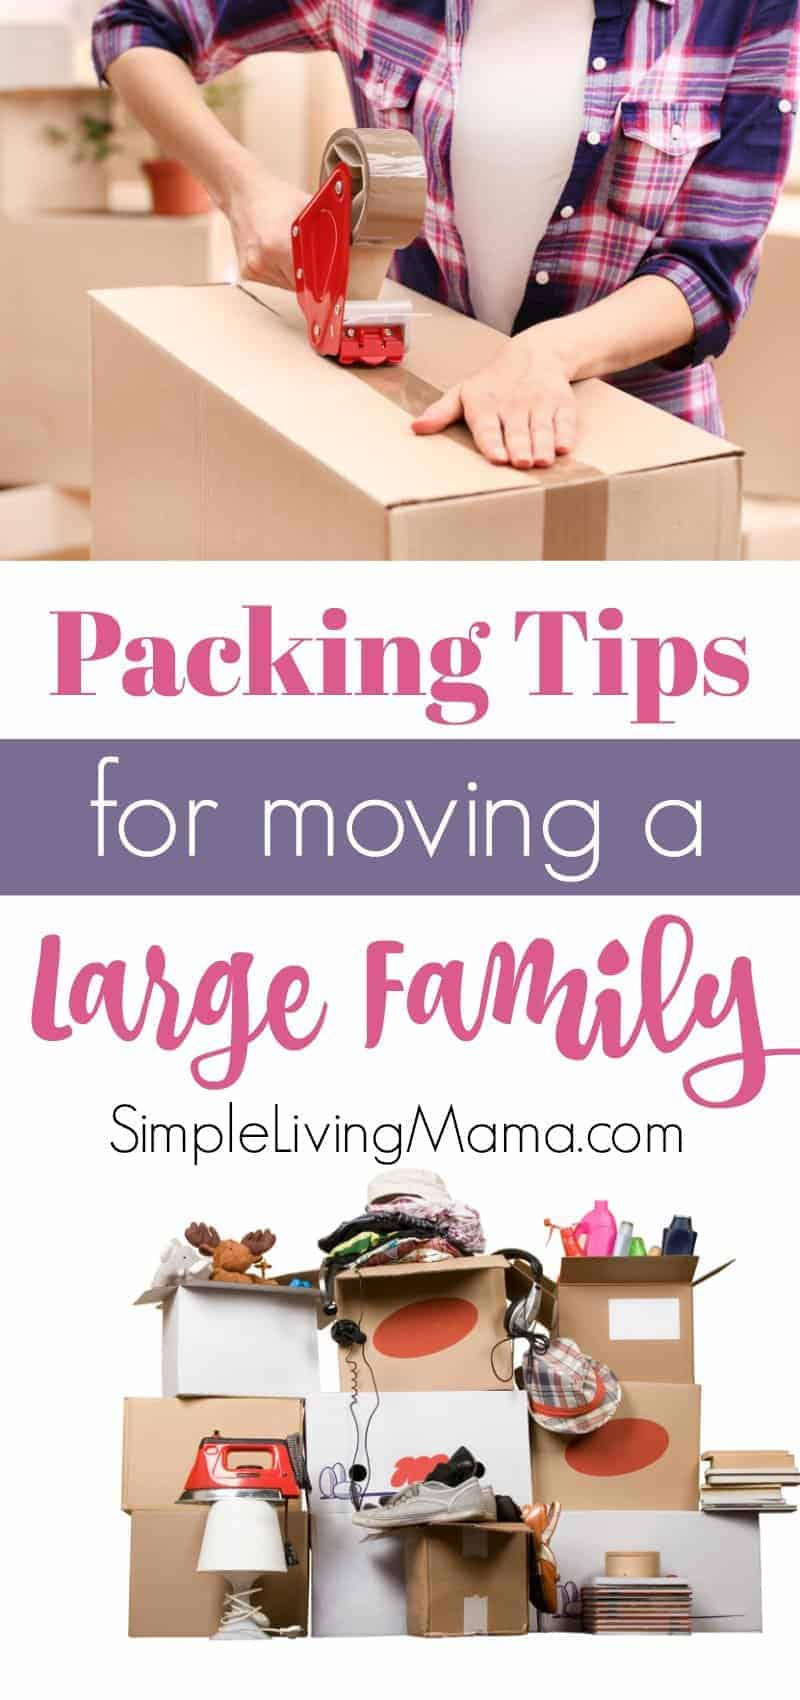 These packing tips for moving a large family will help you figure out how to effectively pack up your house for a big move.